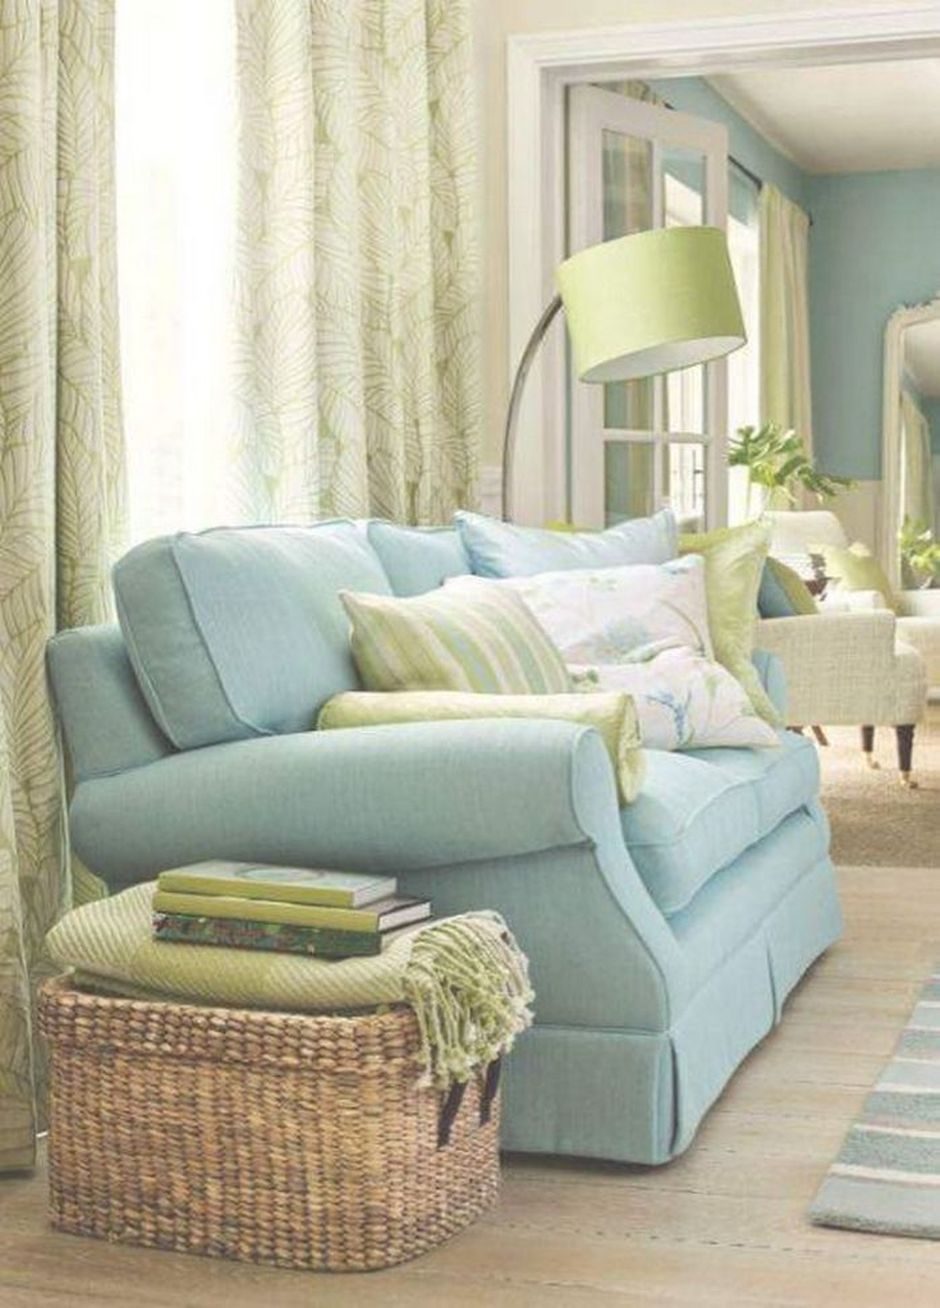 Cozy and Colorful Pastel Living Room Interior Style 29 ...